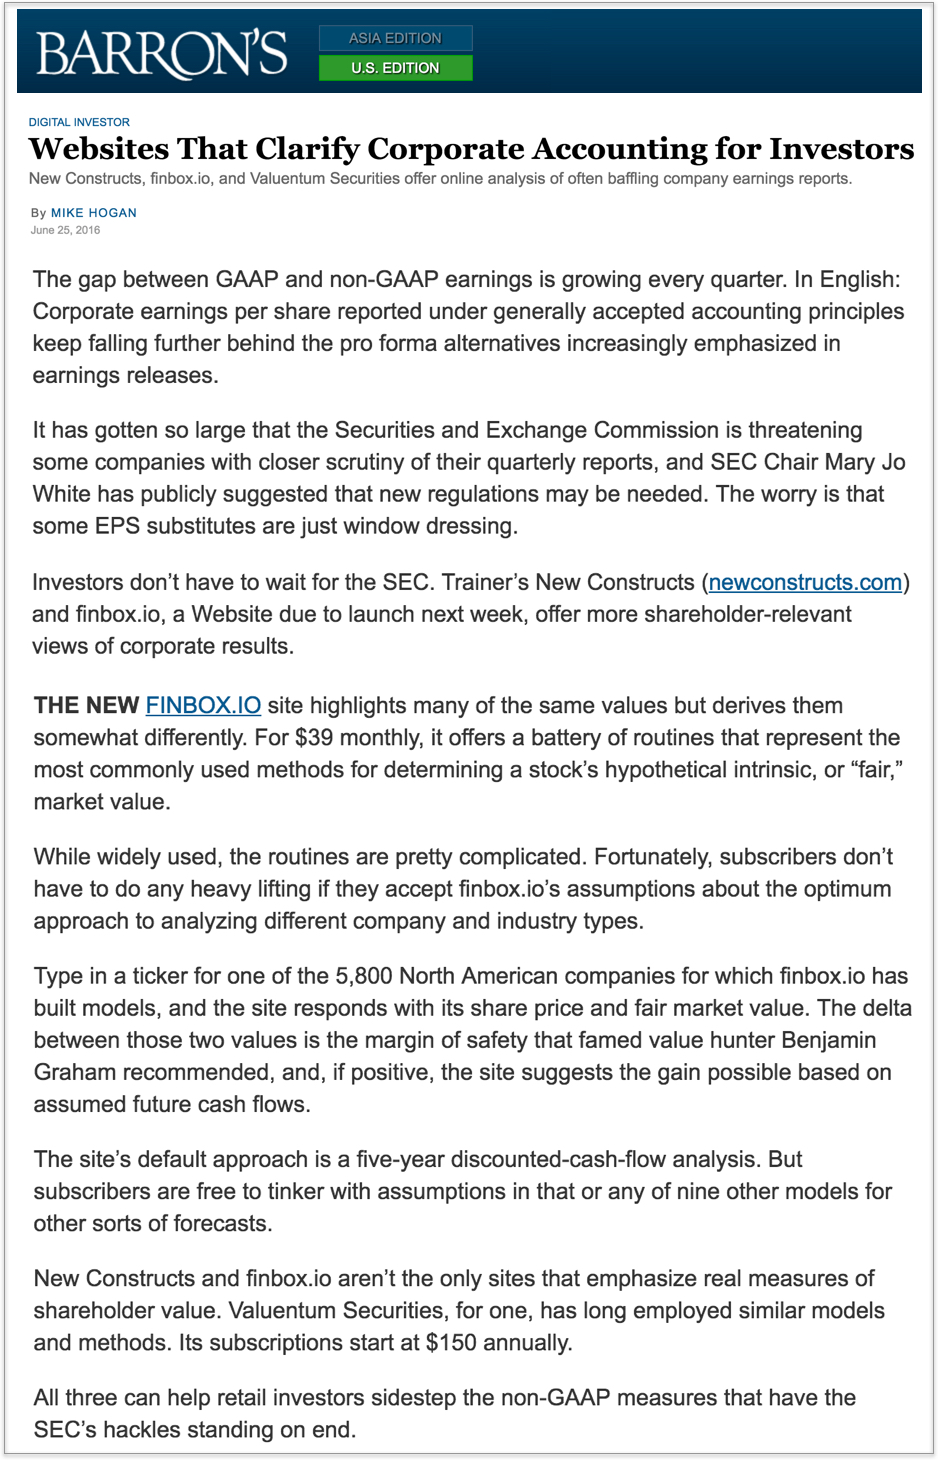 Barrons article on finbox.io 6.25.16